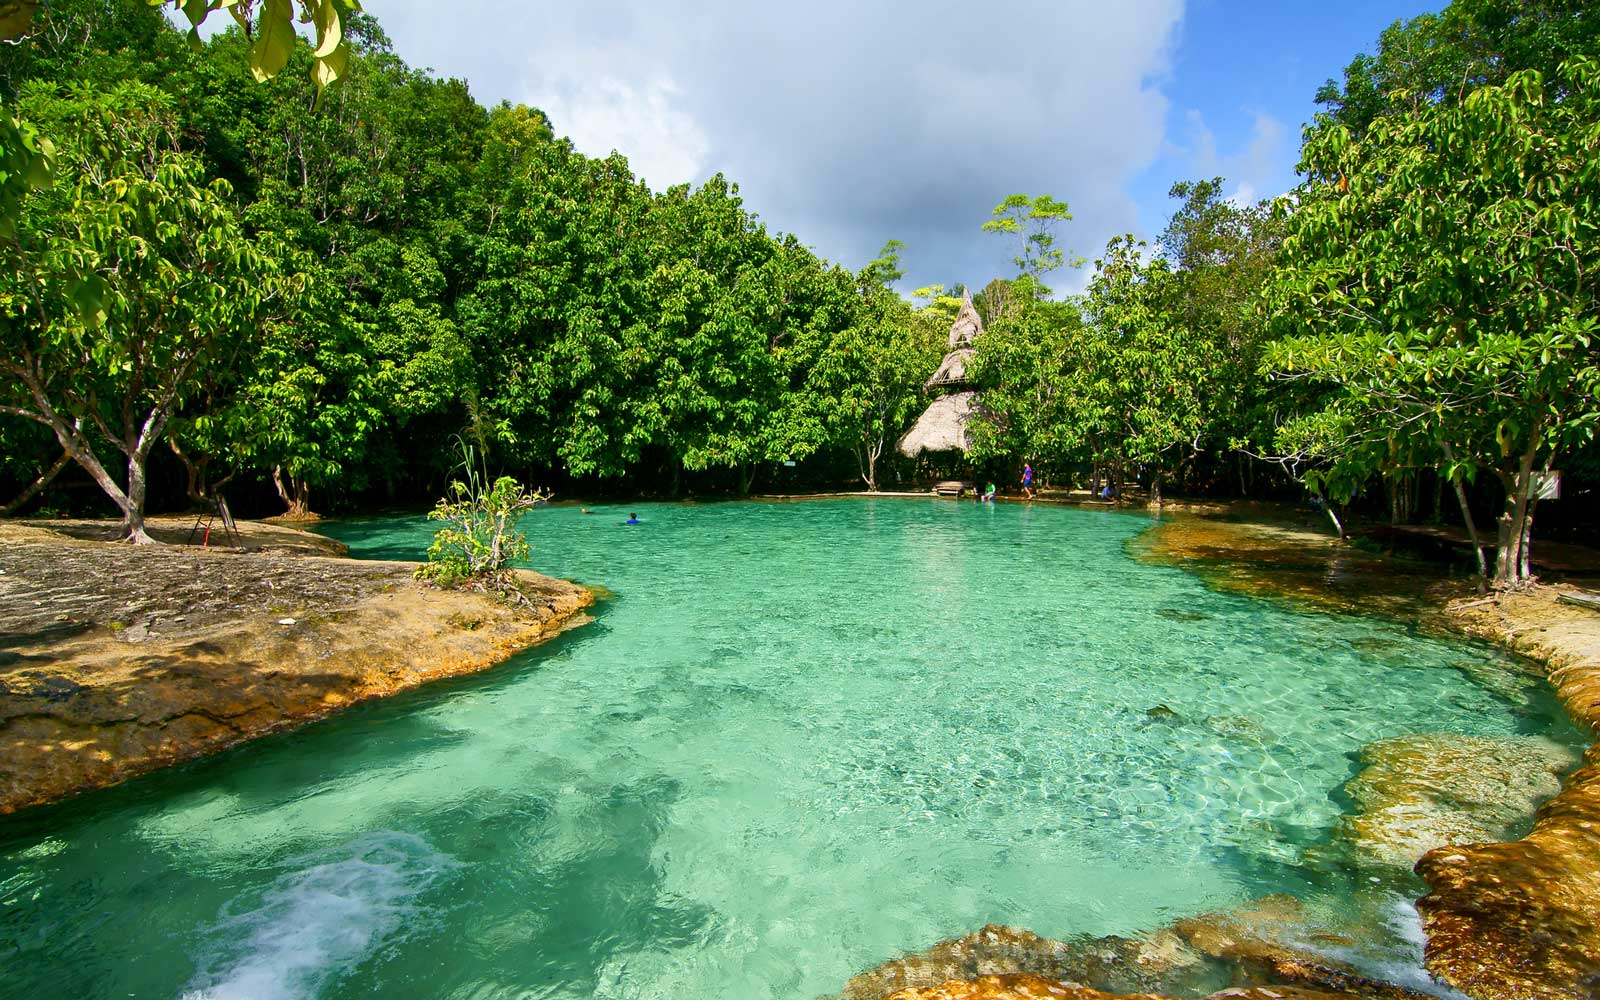 These Otherworldly Natural Pools in Thailand Are Always Vivid Blue and Green